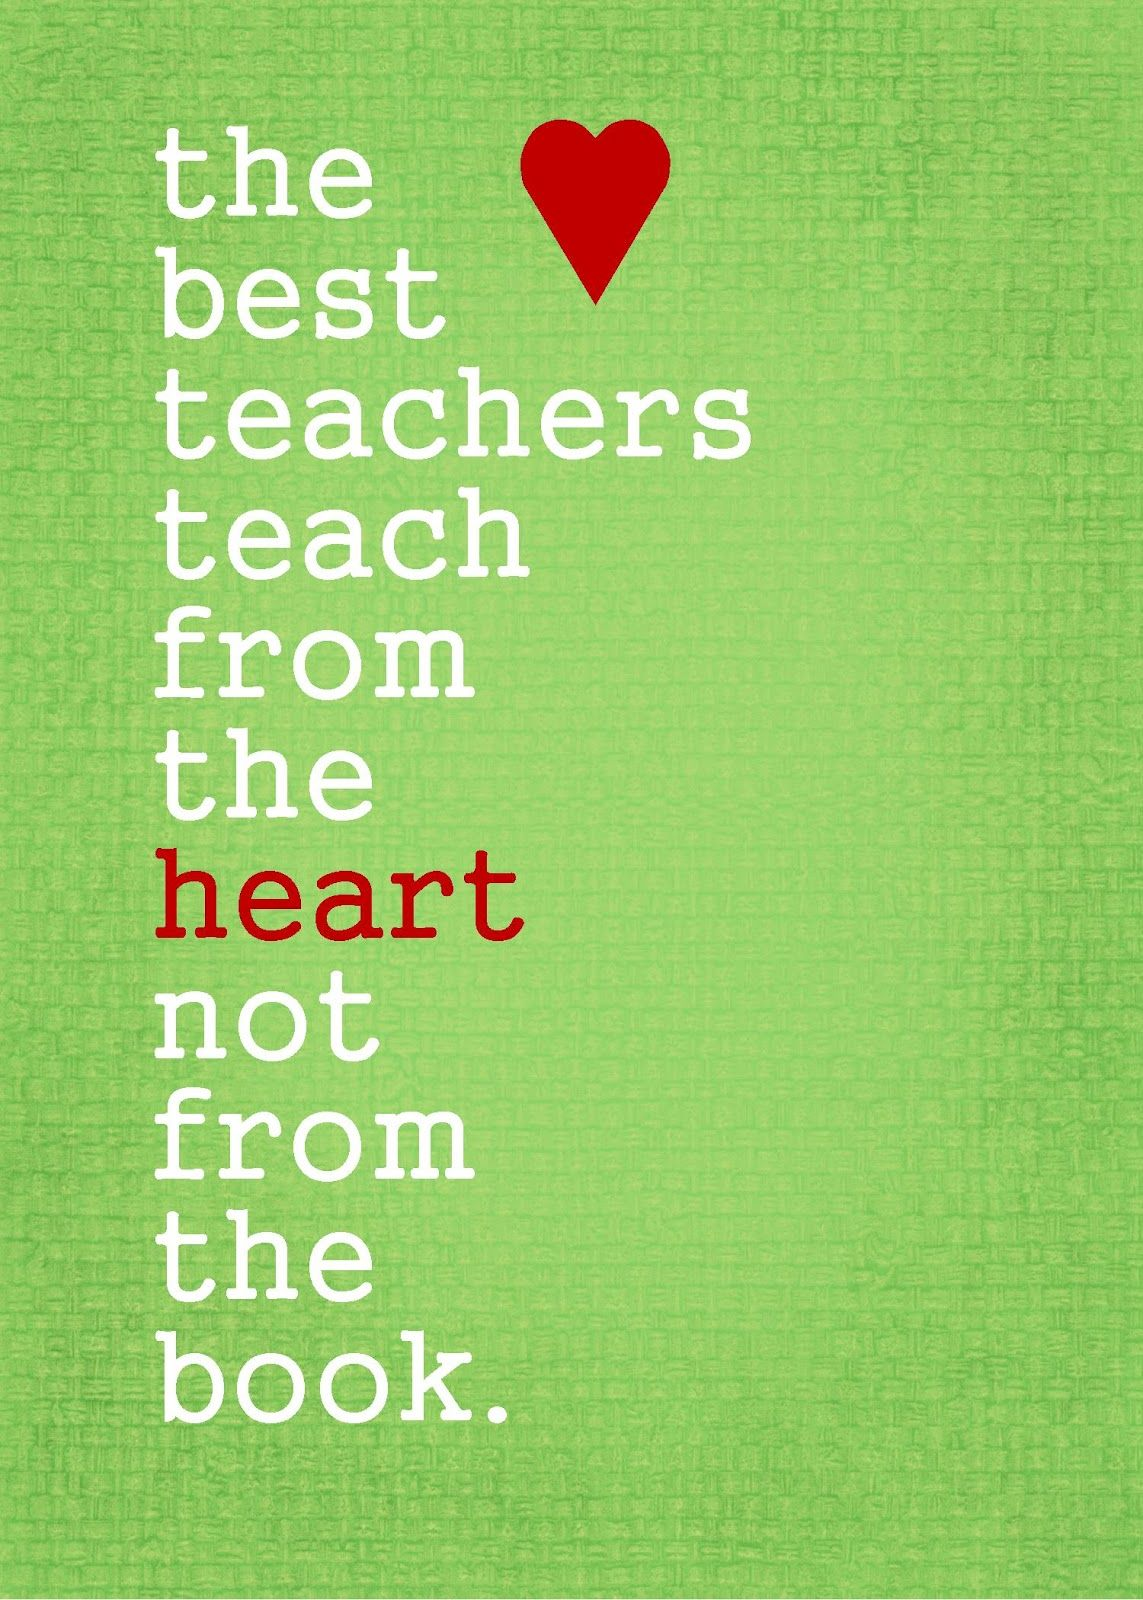 free teacher pictures, saying and quotes Teacher Gifts